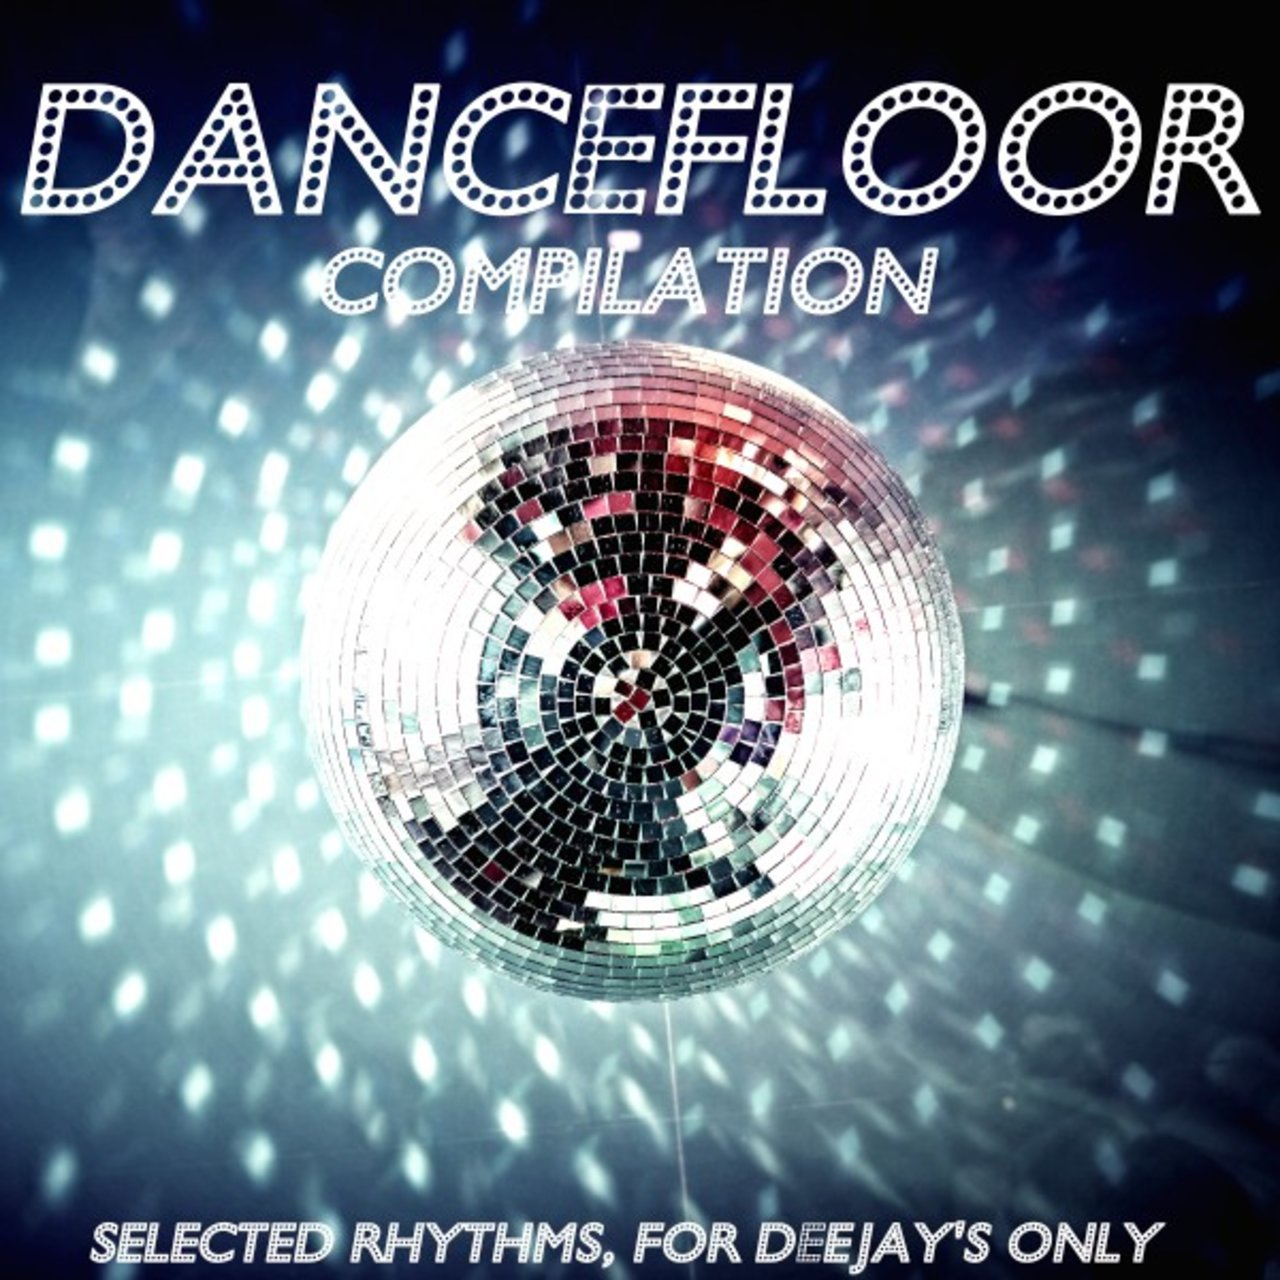 Dancefloor Compilation (Selected Rhythms, for Deejay's Only)